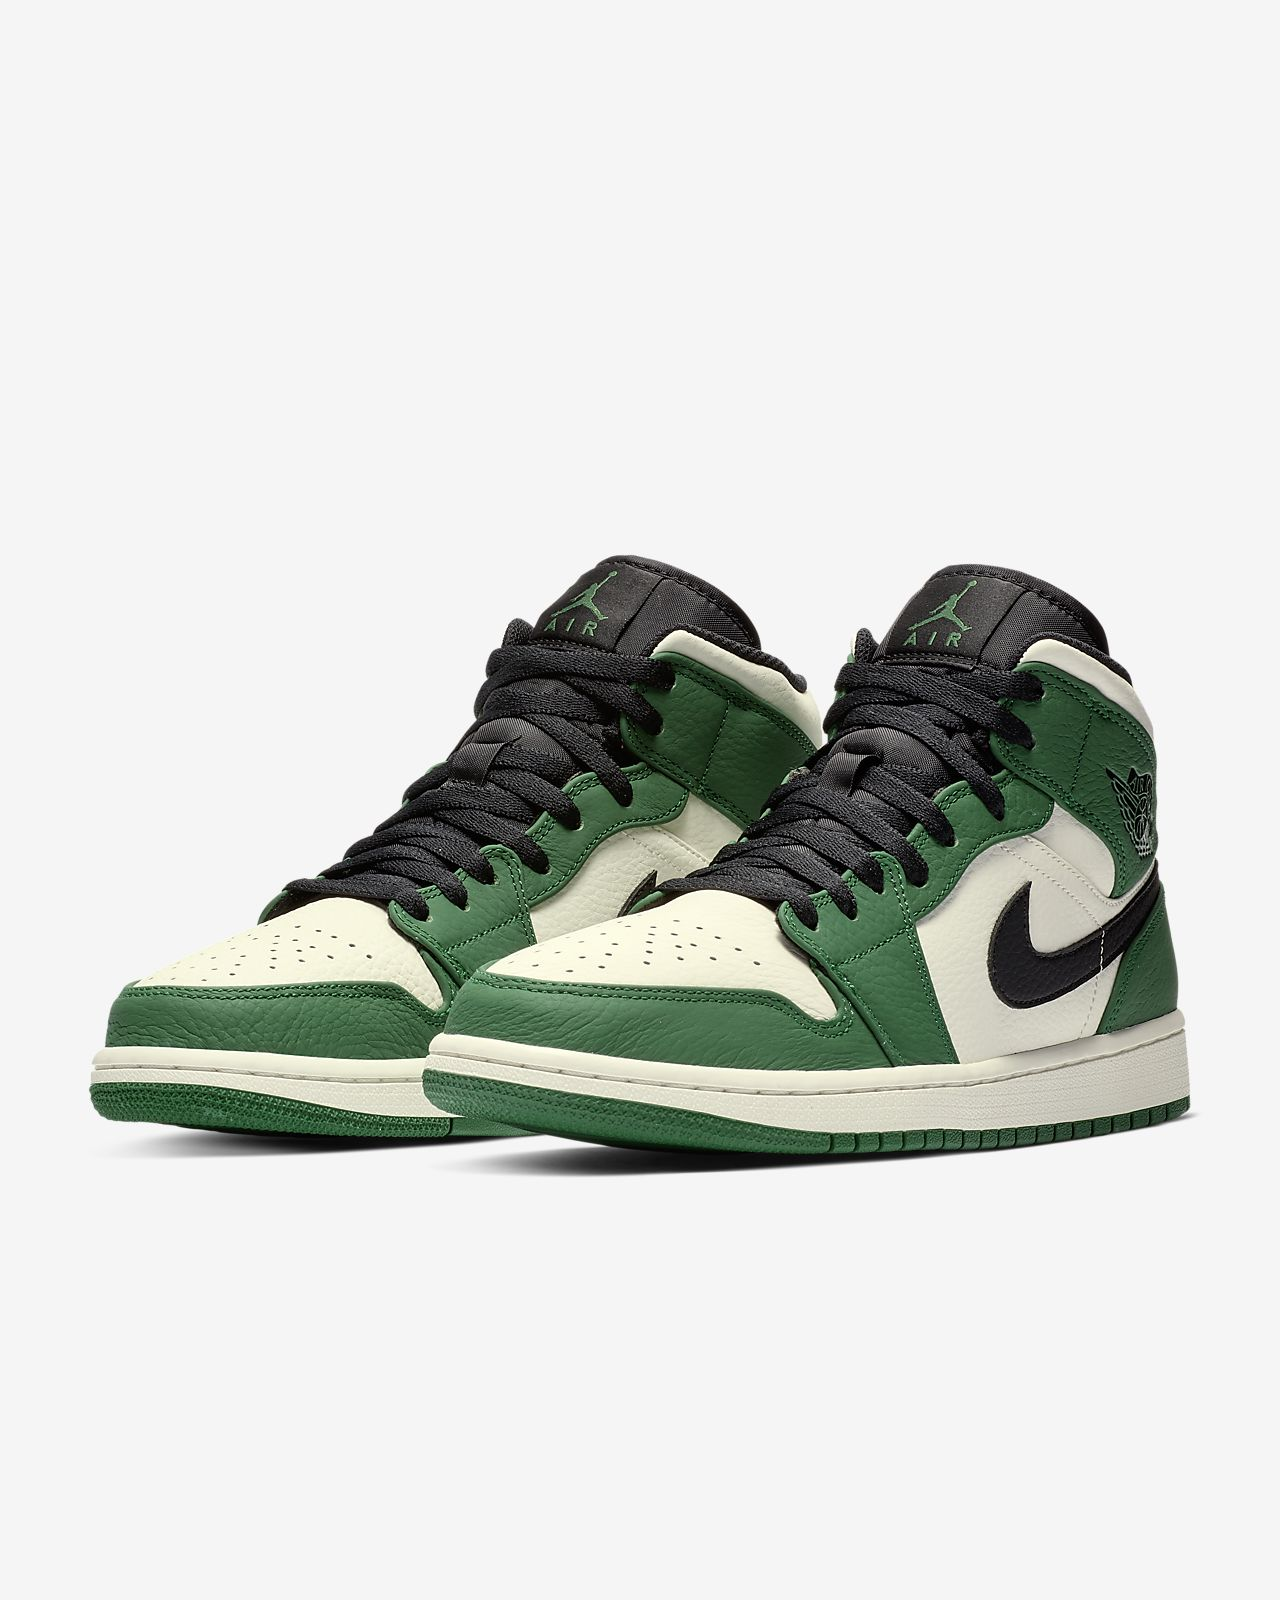 661ec51a99bb Air Jordan 1 Mid SE Men s Shoe. Nike.com